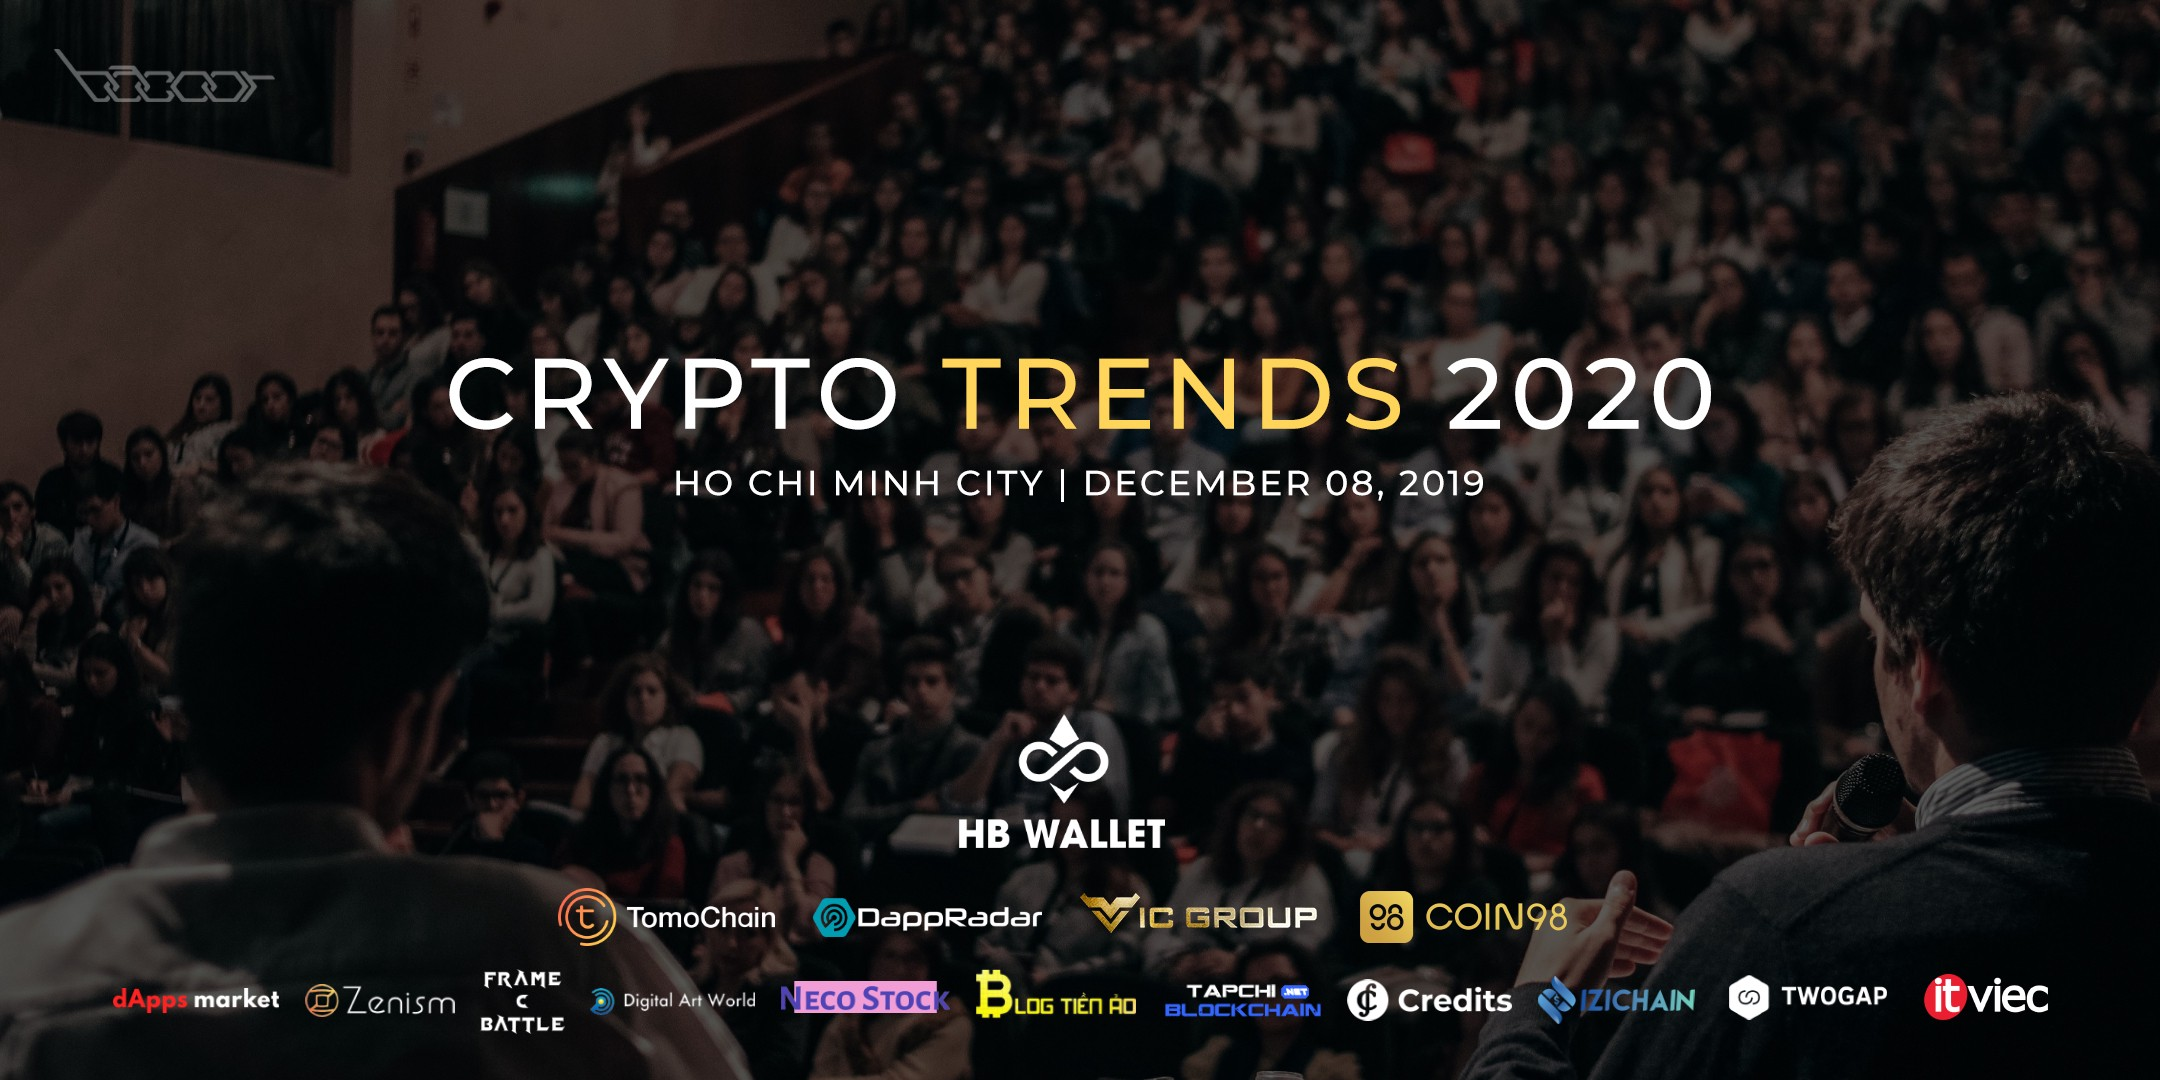 CRYPTO TRENDS 2020 HOSTED BY HB WALLET